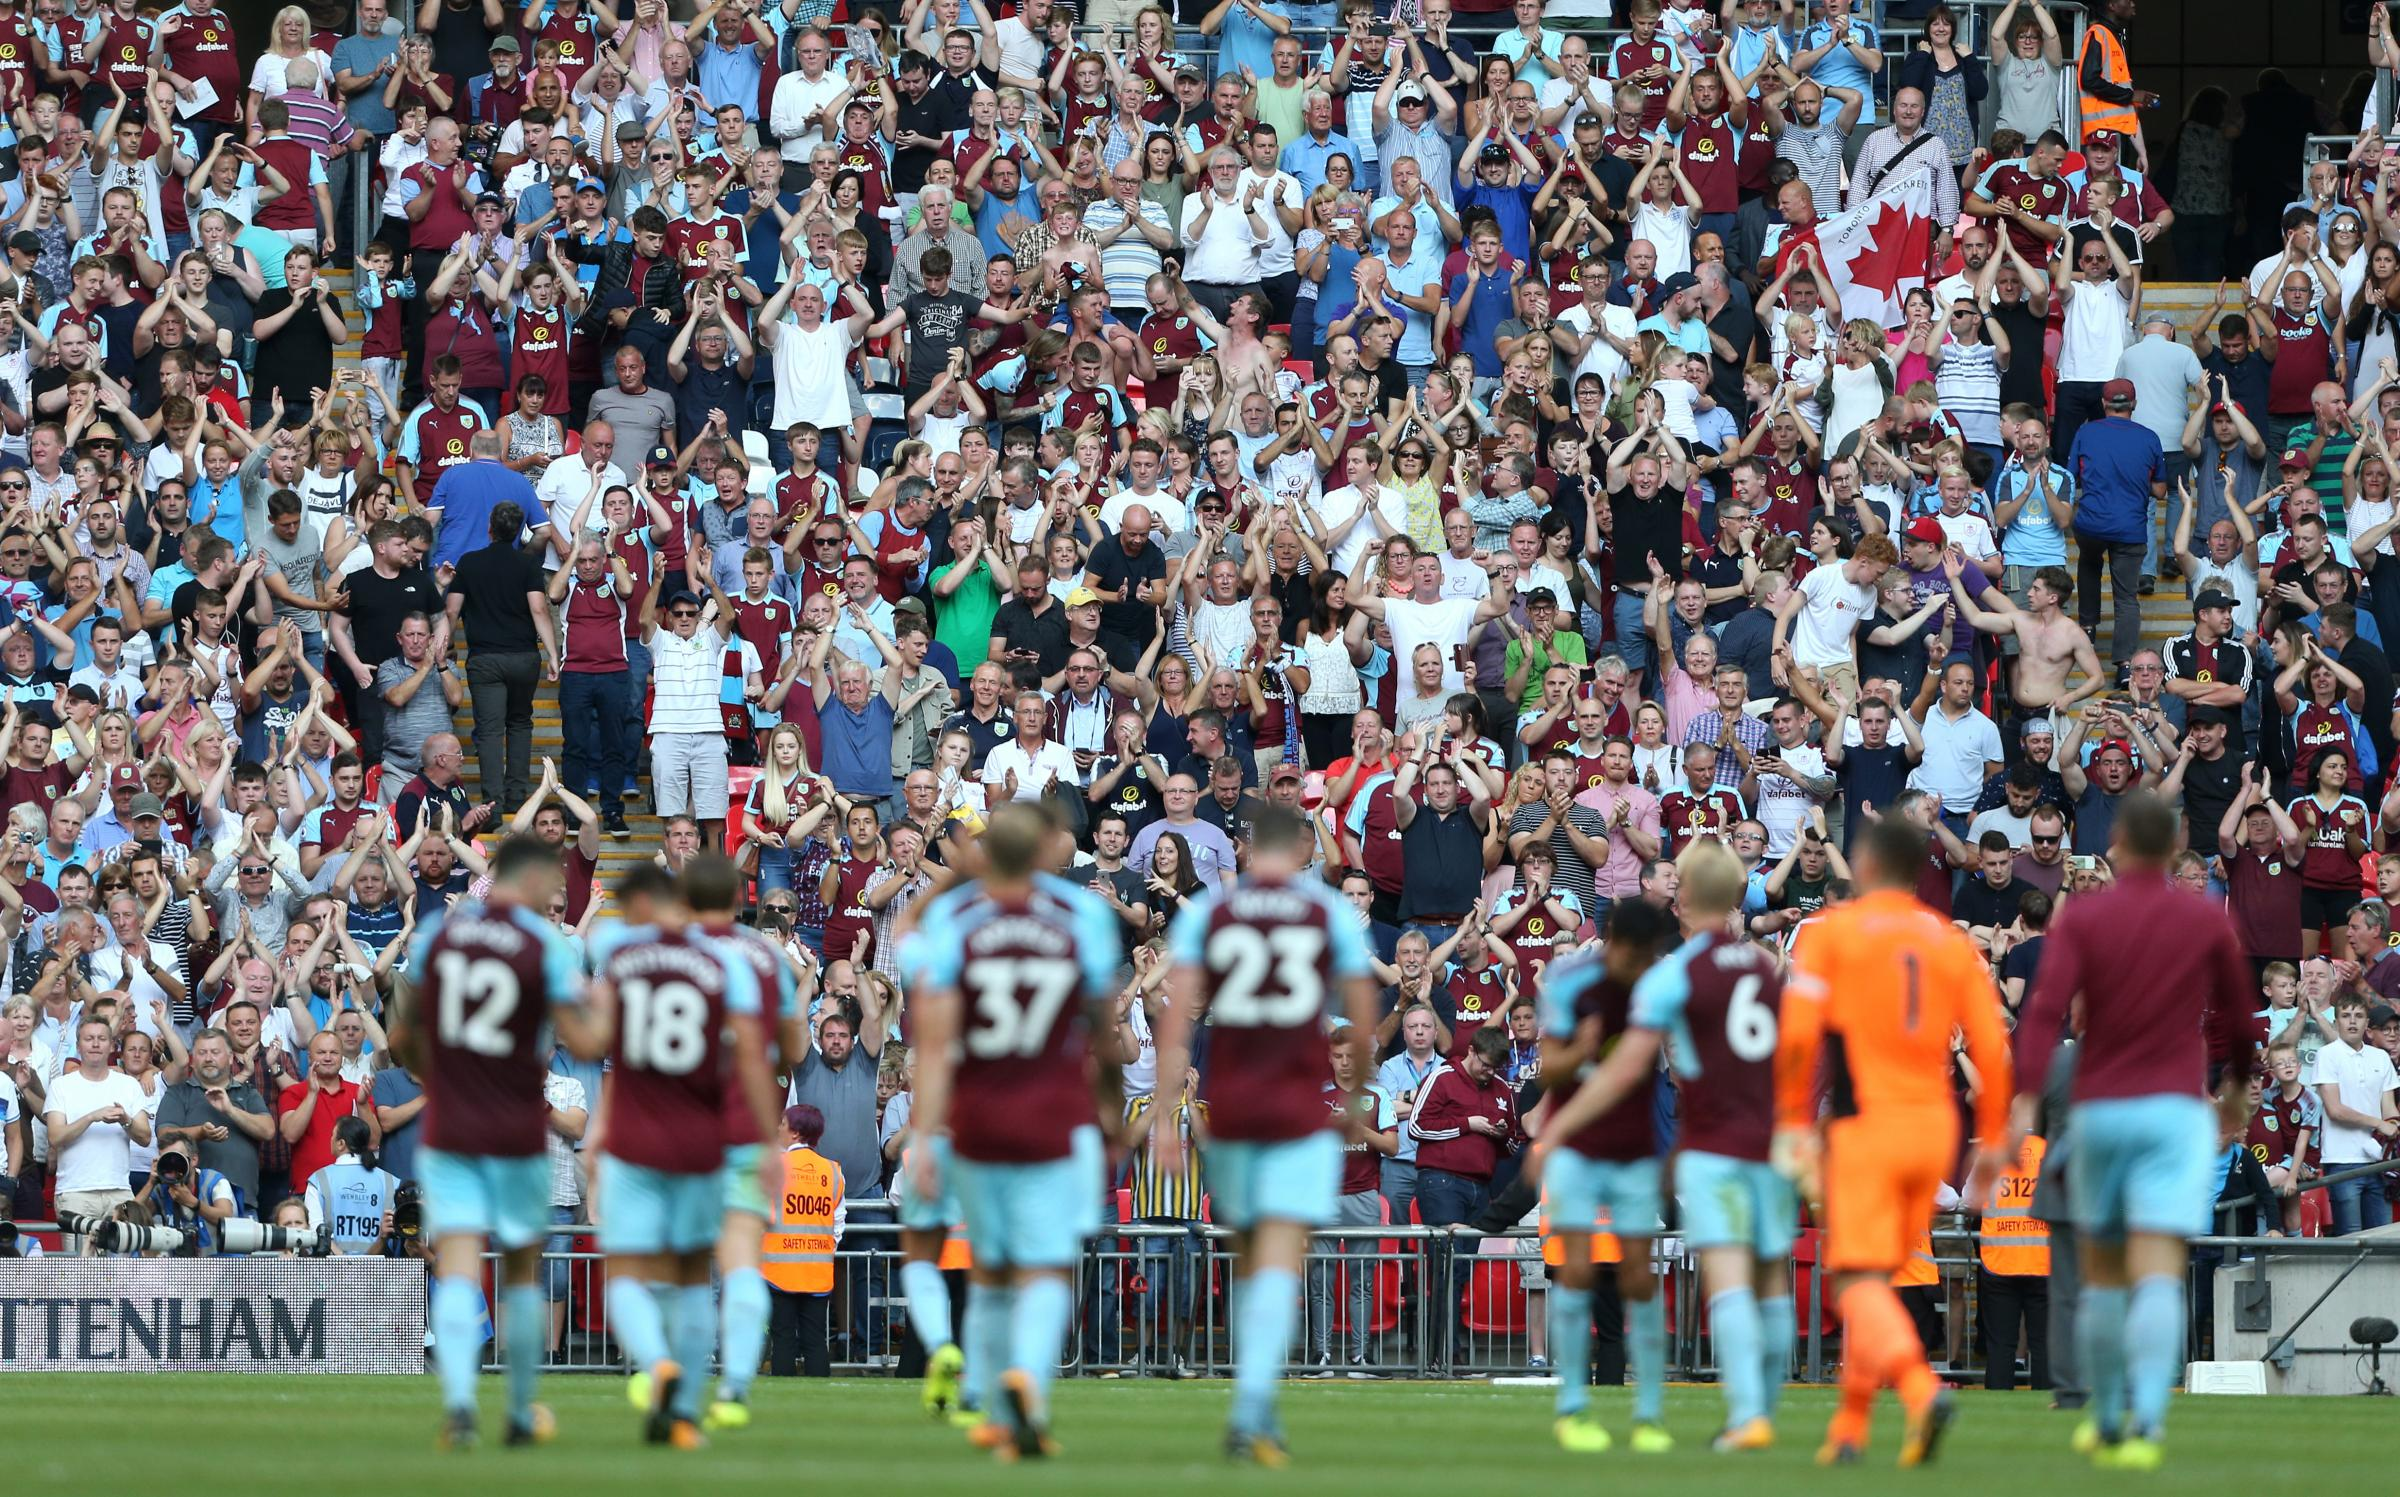 The Burnley fans applaud their players at the end of the game